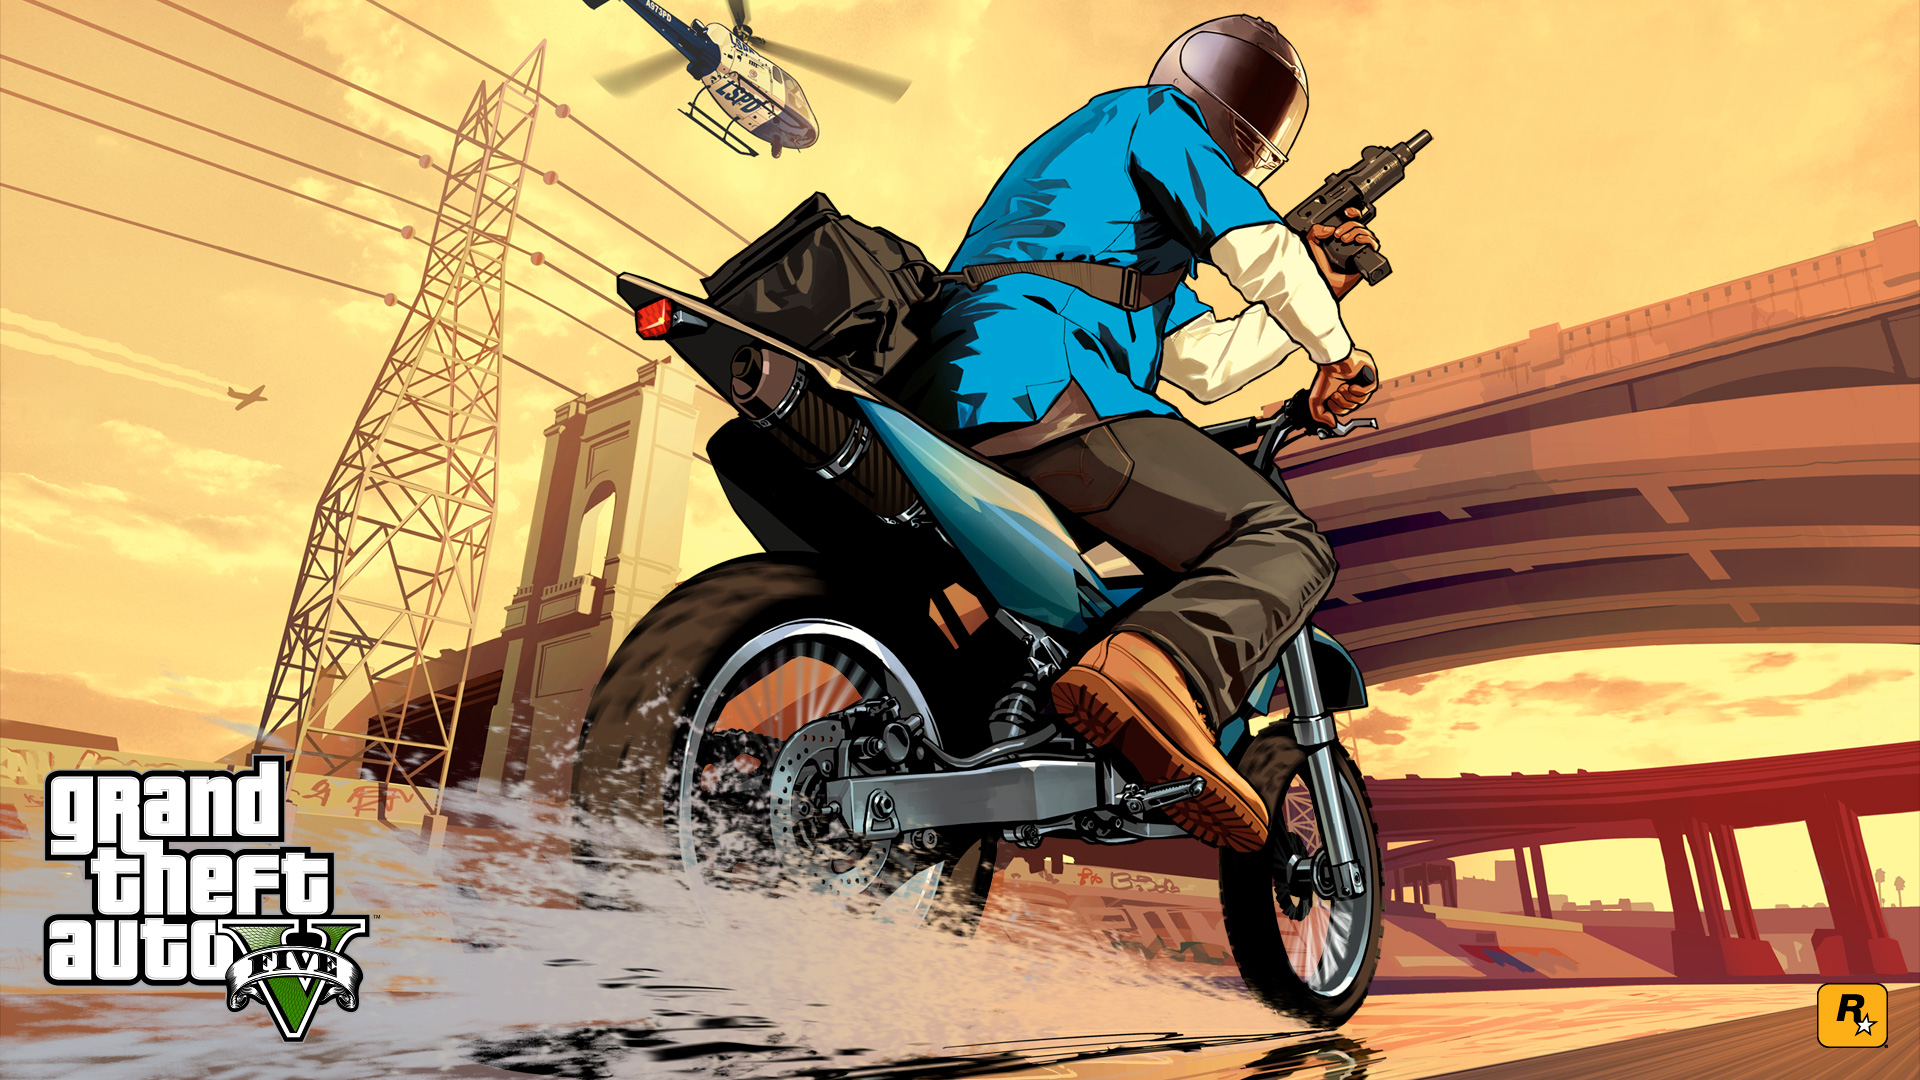 file_7973_cash-and-carry-by-land-GTAV11